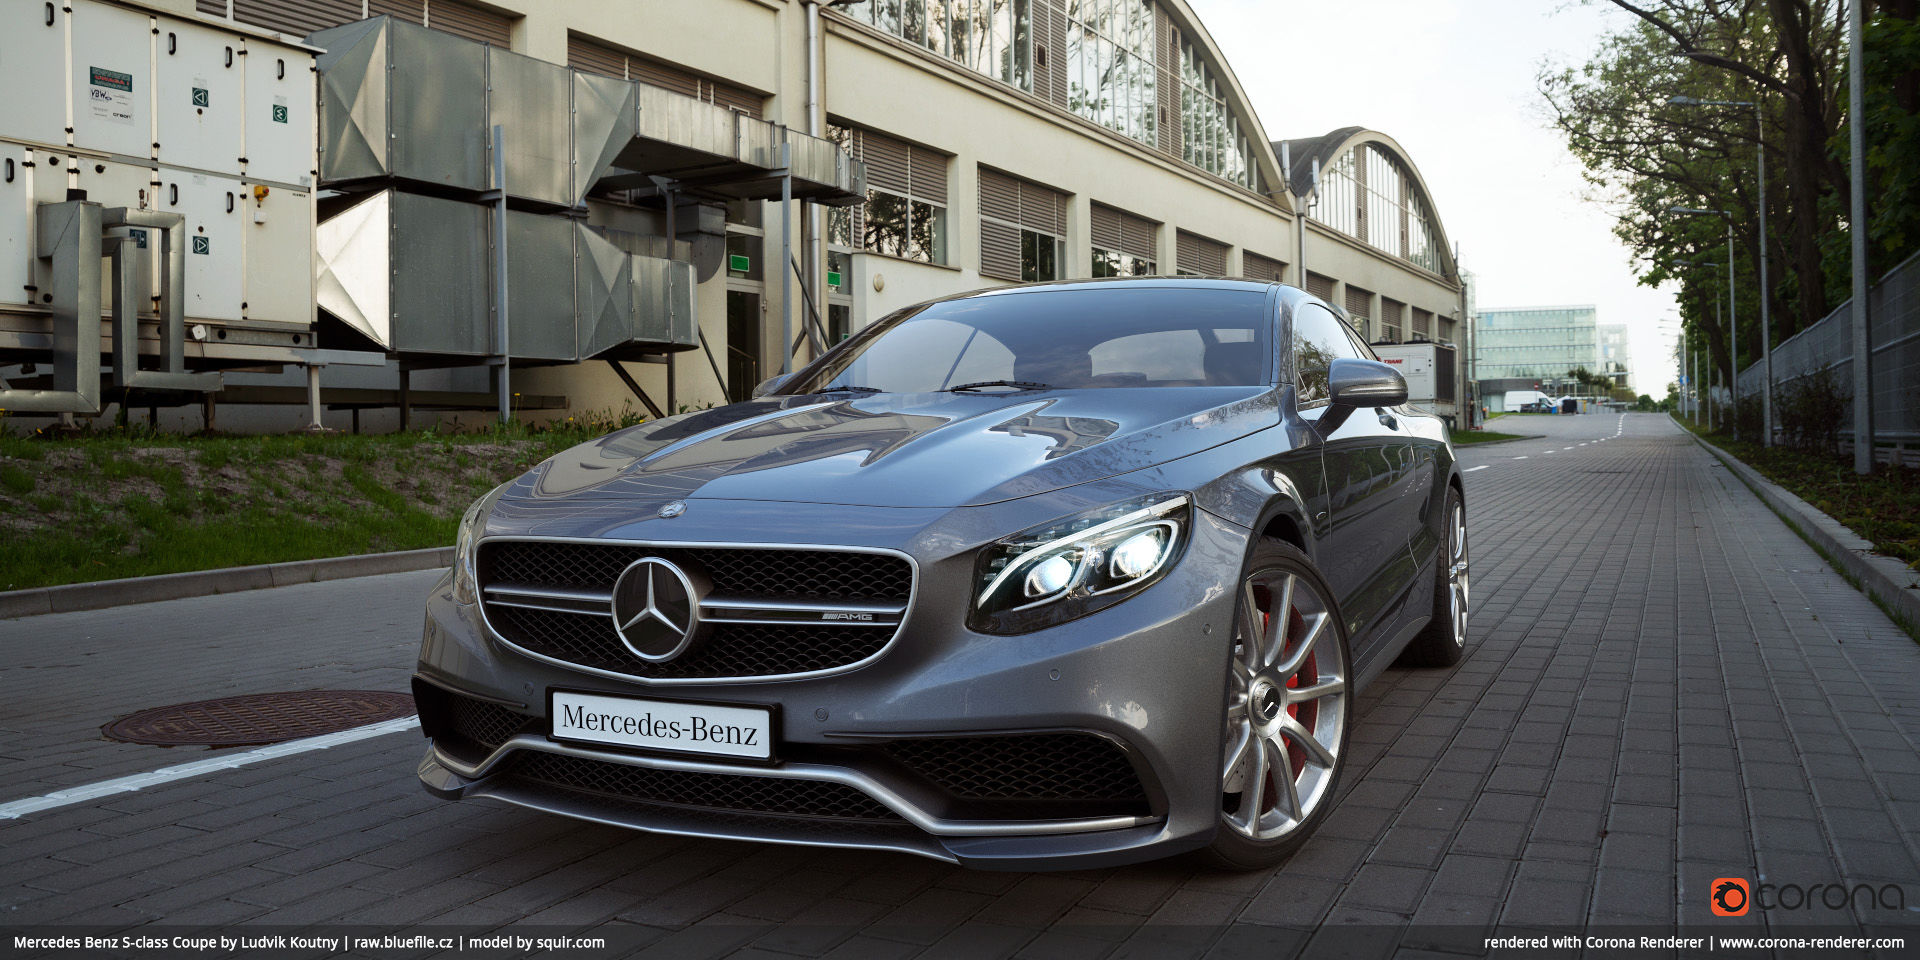 Mercedes Benz S-class Coupe 03 by Ludvik Koutny